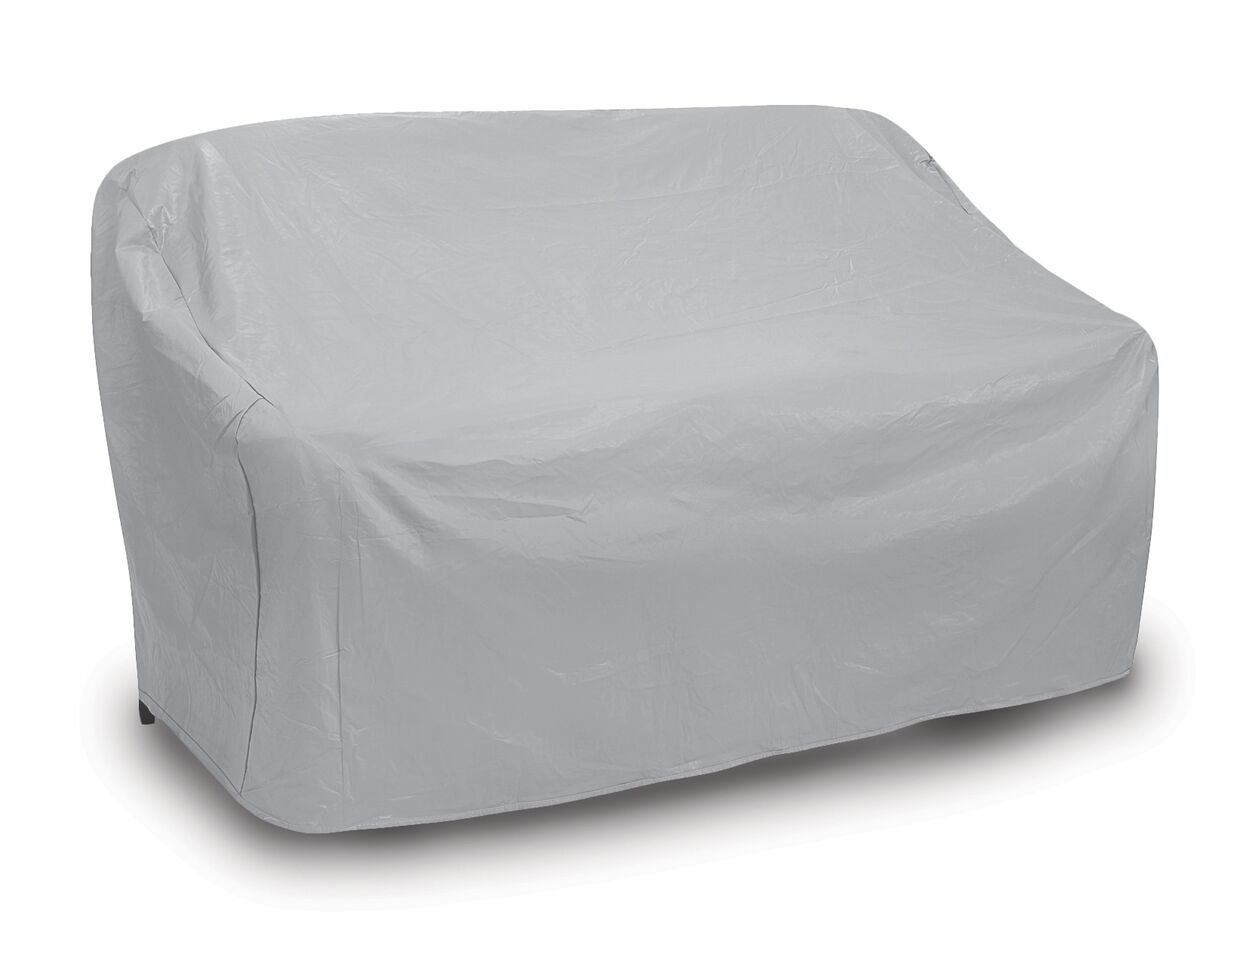 Protective Covers Weatherproof 3 Seat Wicker/Rattan Sofa Cover, X Large, Gray - 1124 by Protective Covers